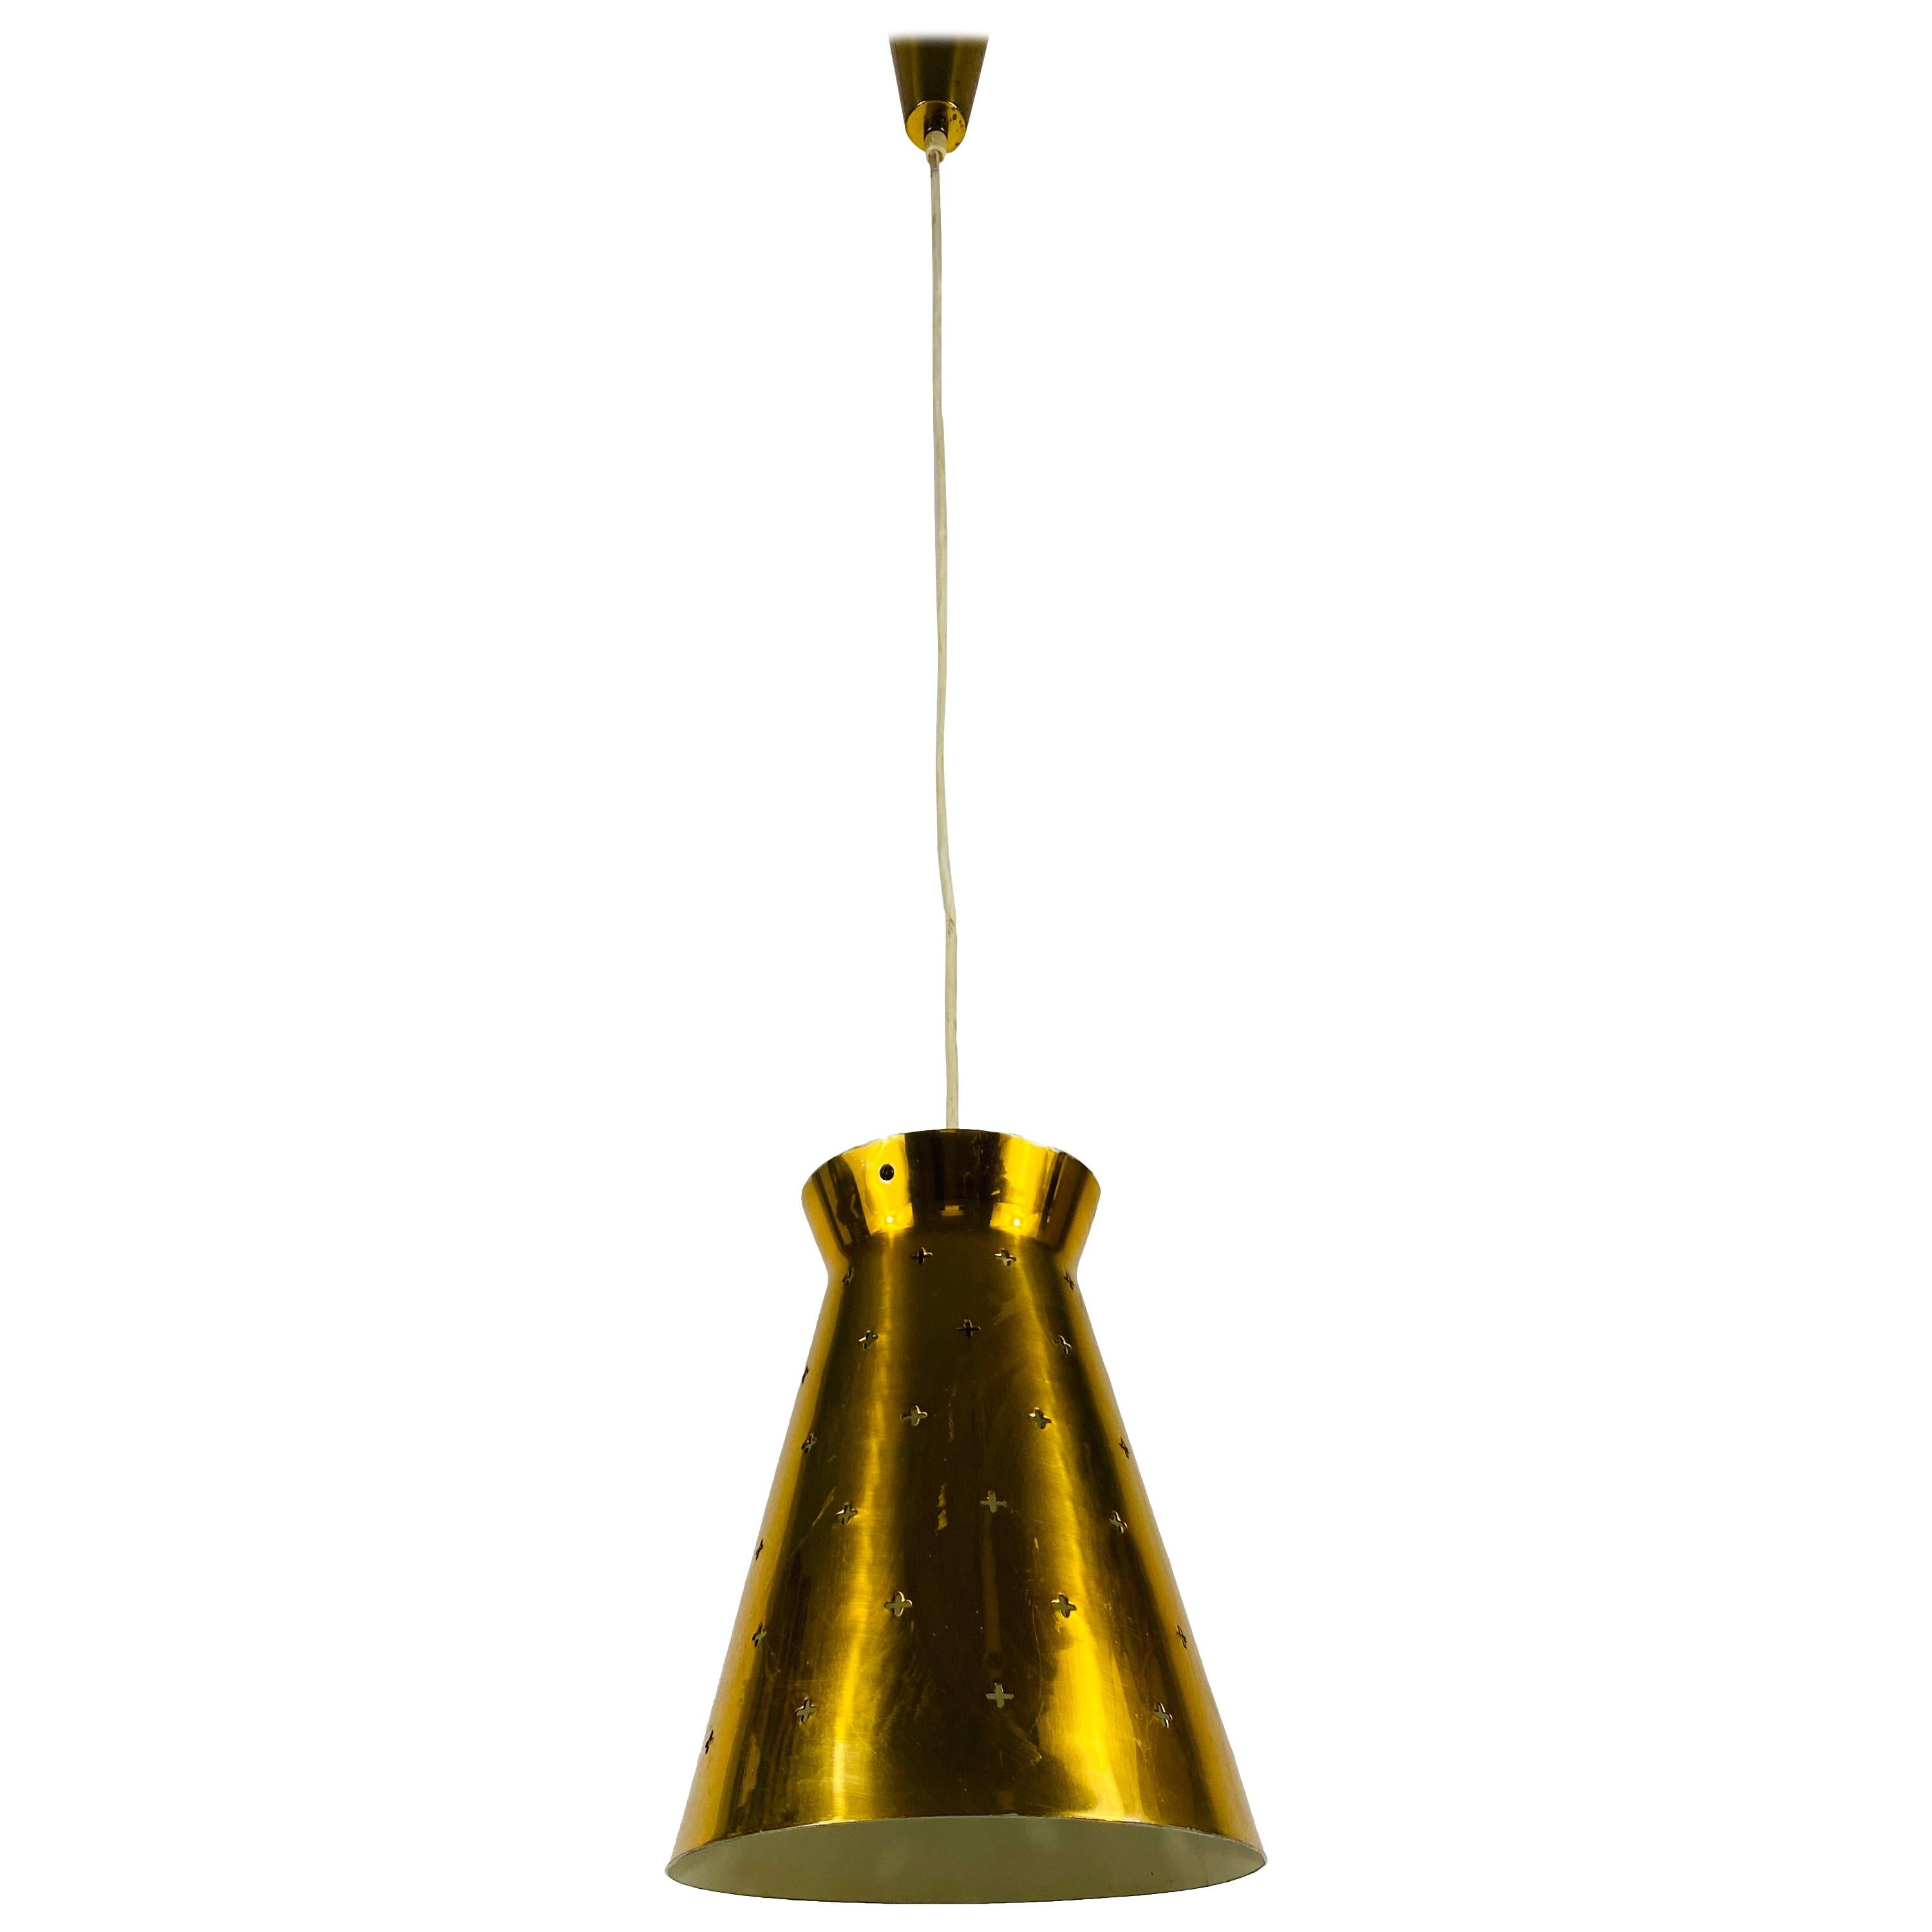 Polished Brass Pendant Lamp in the Style of Paavo Tynell, 1950s